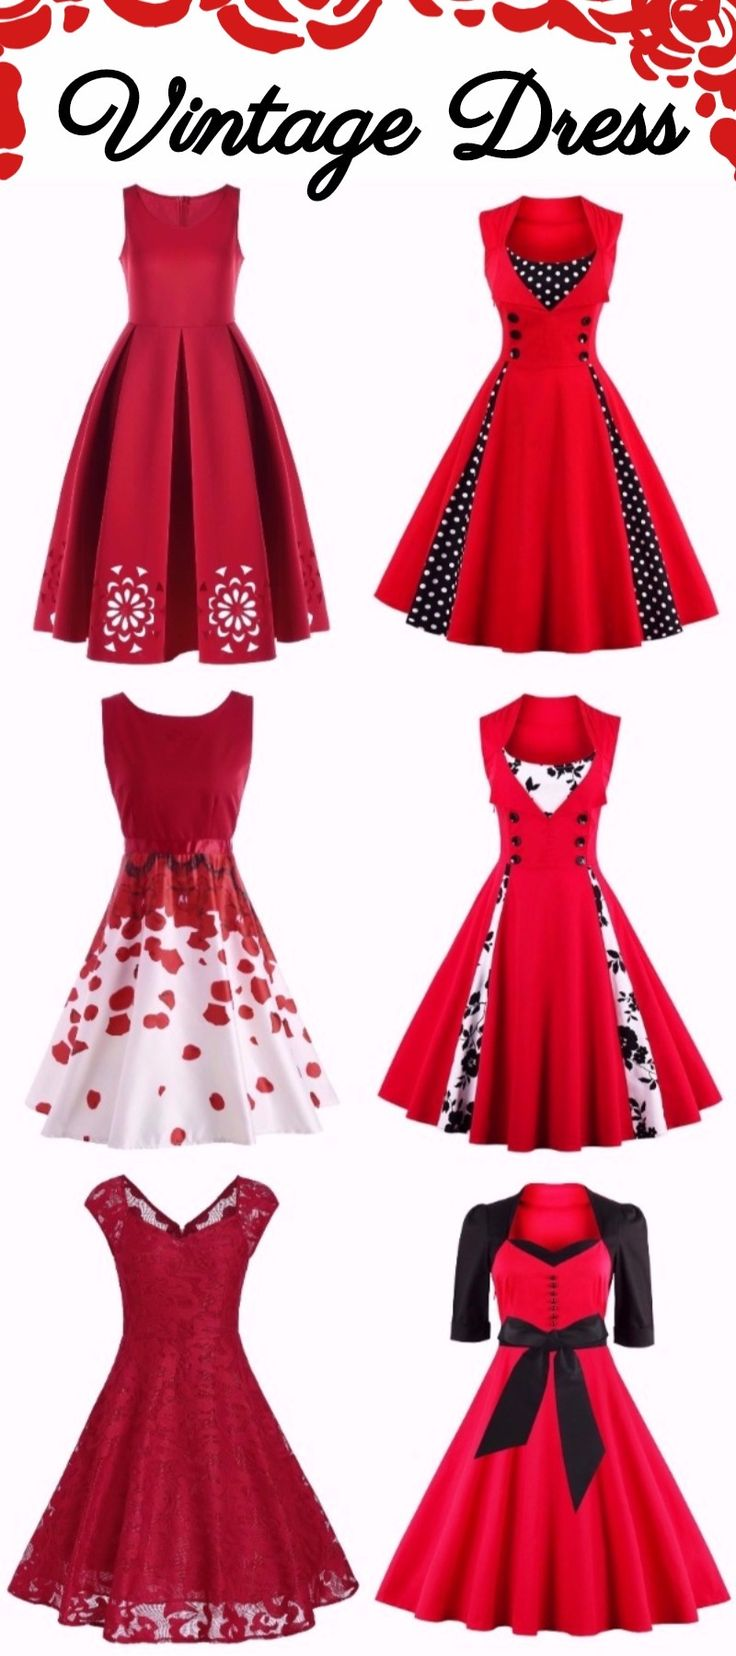 Red Vintage Dress | Party Dress | Sammydress.com